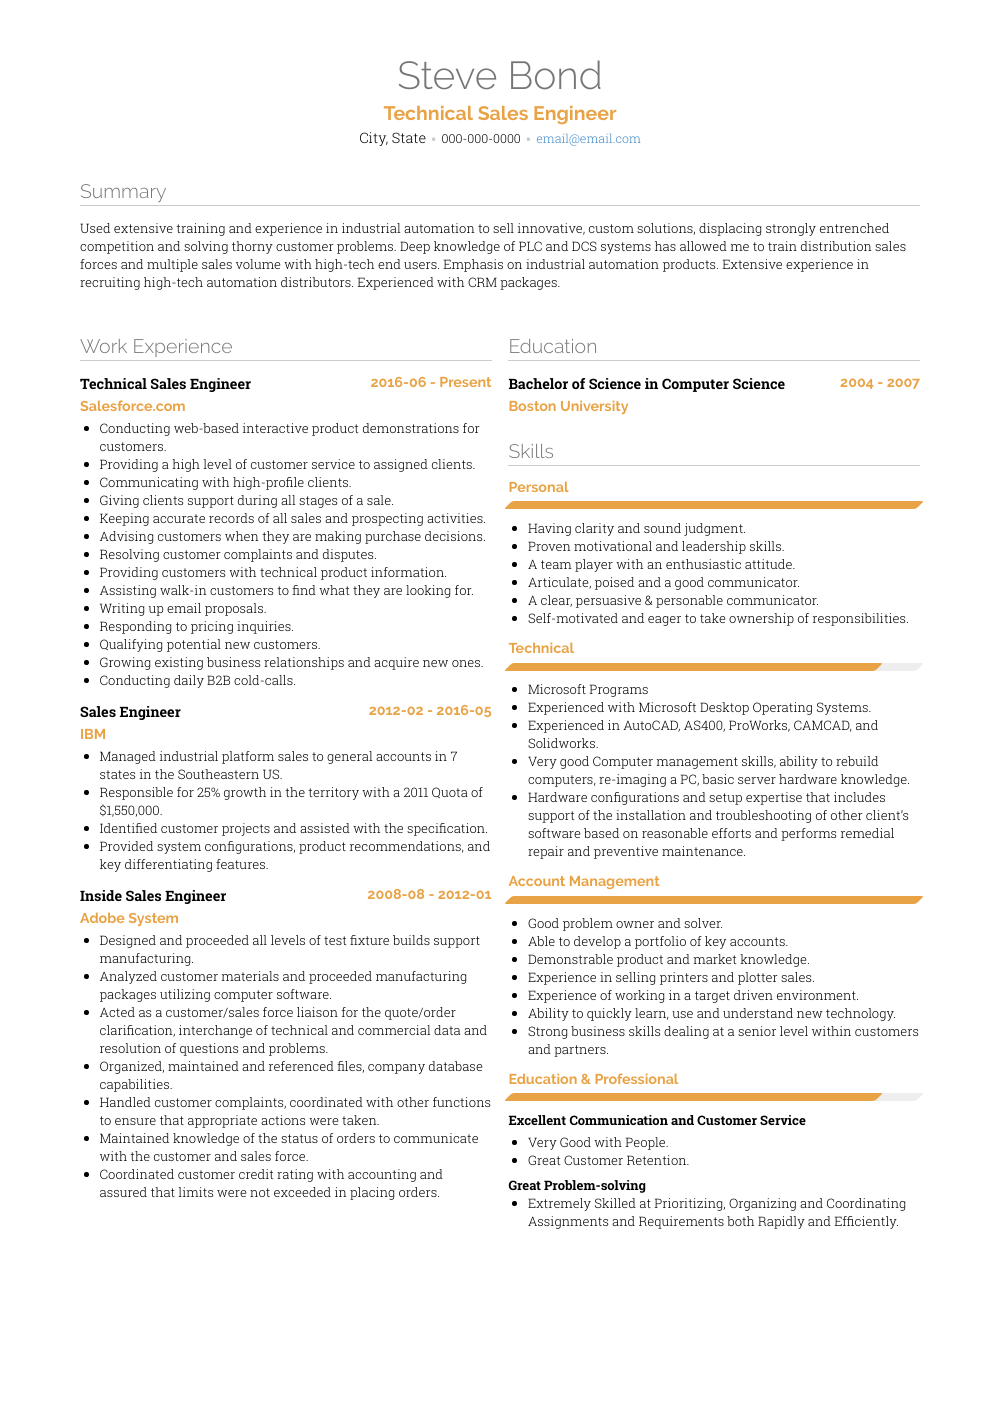 Technical Sales Engineer Resume Sample and Template